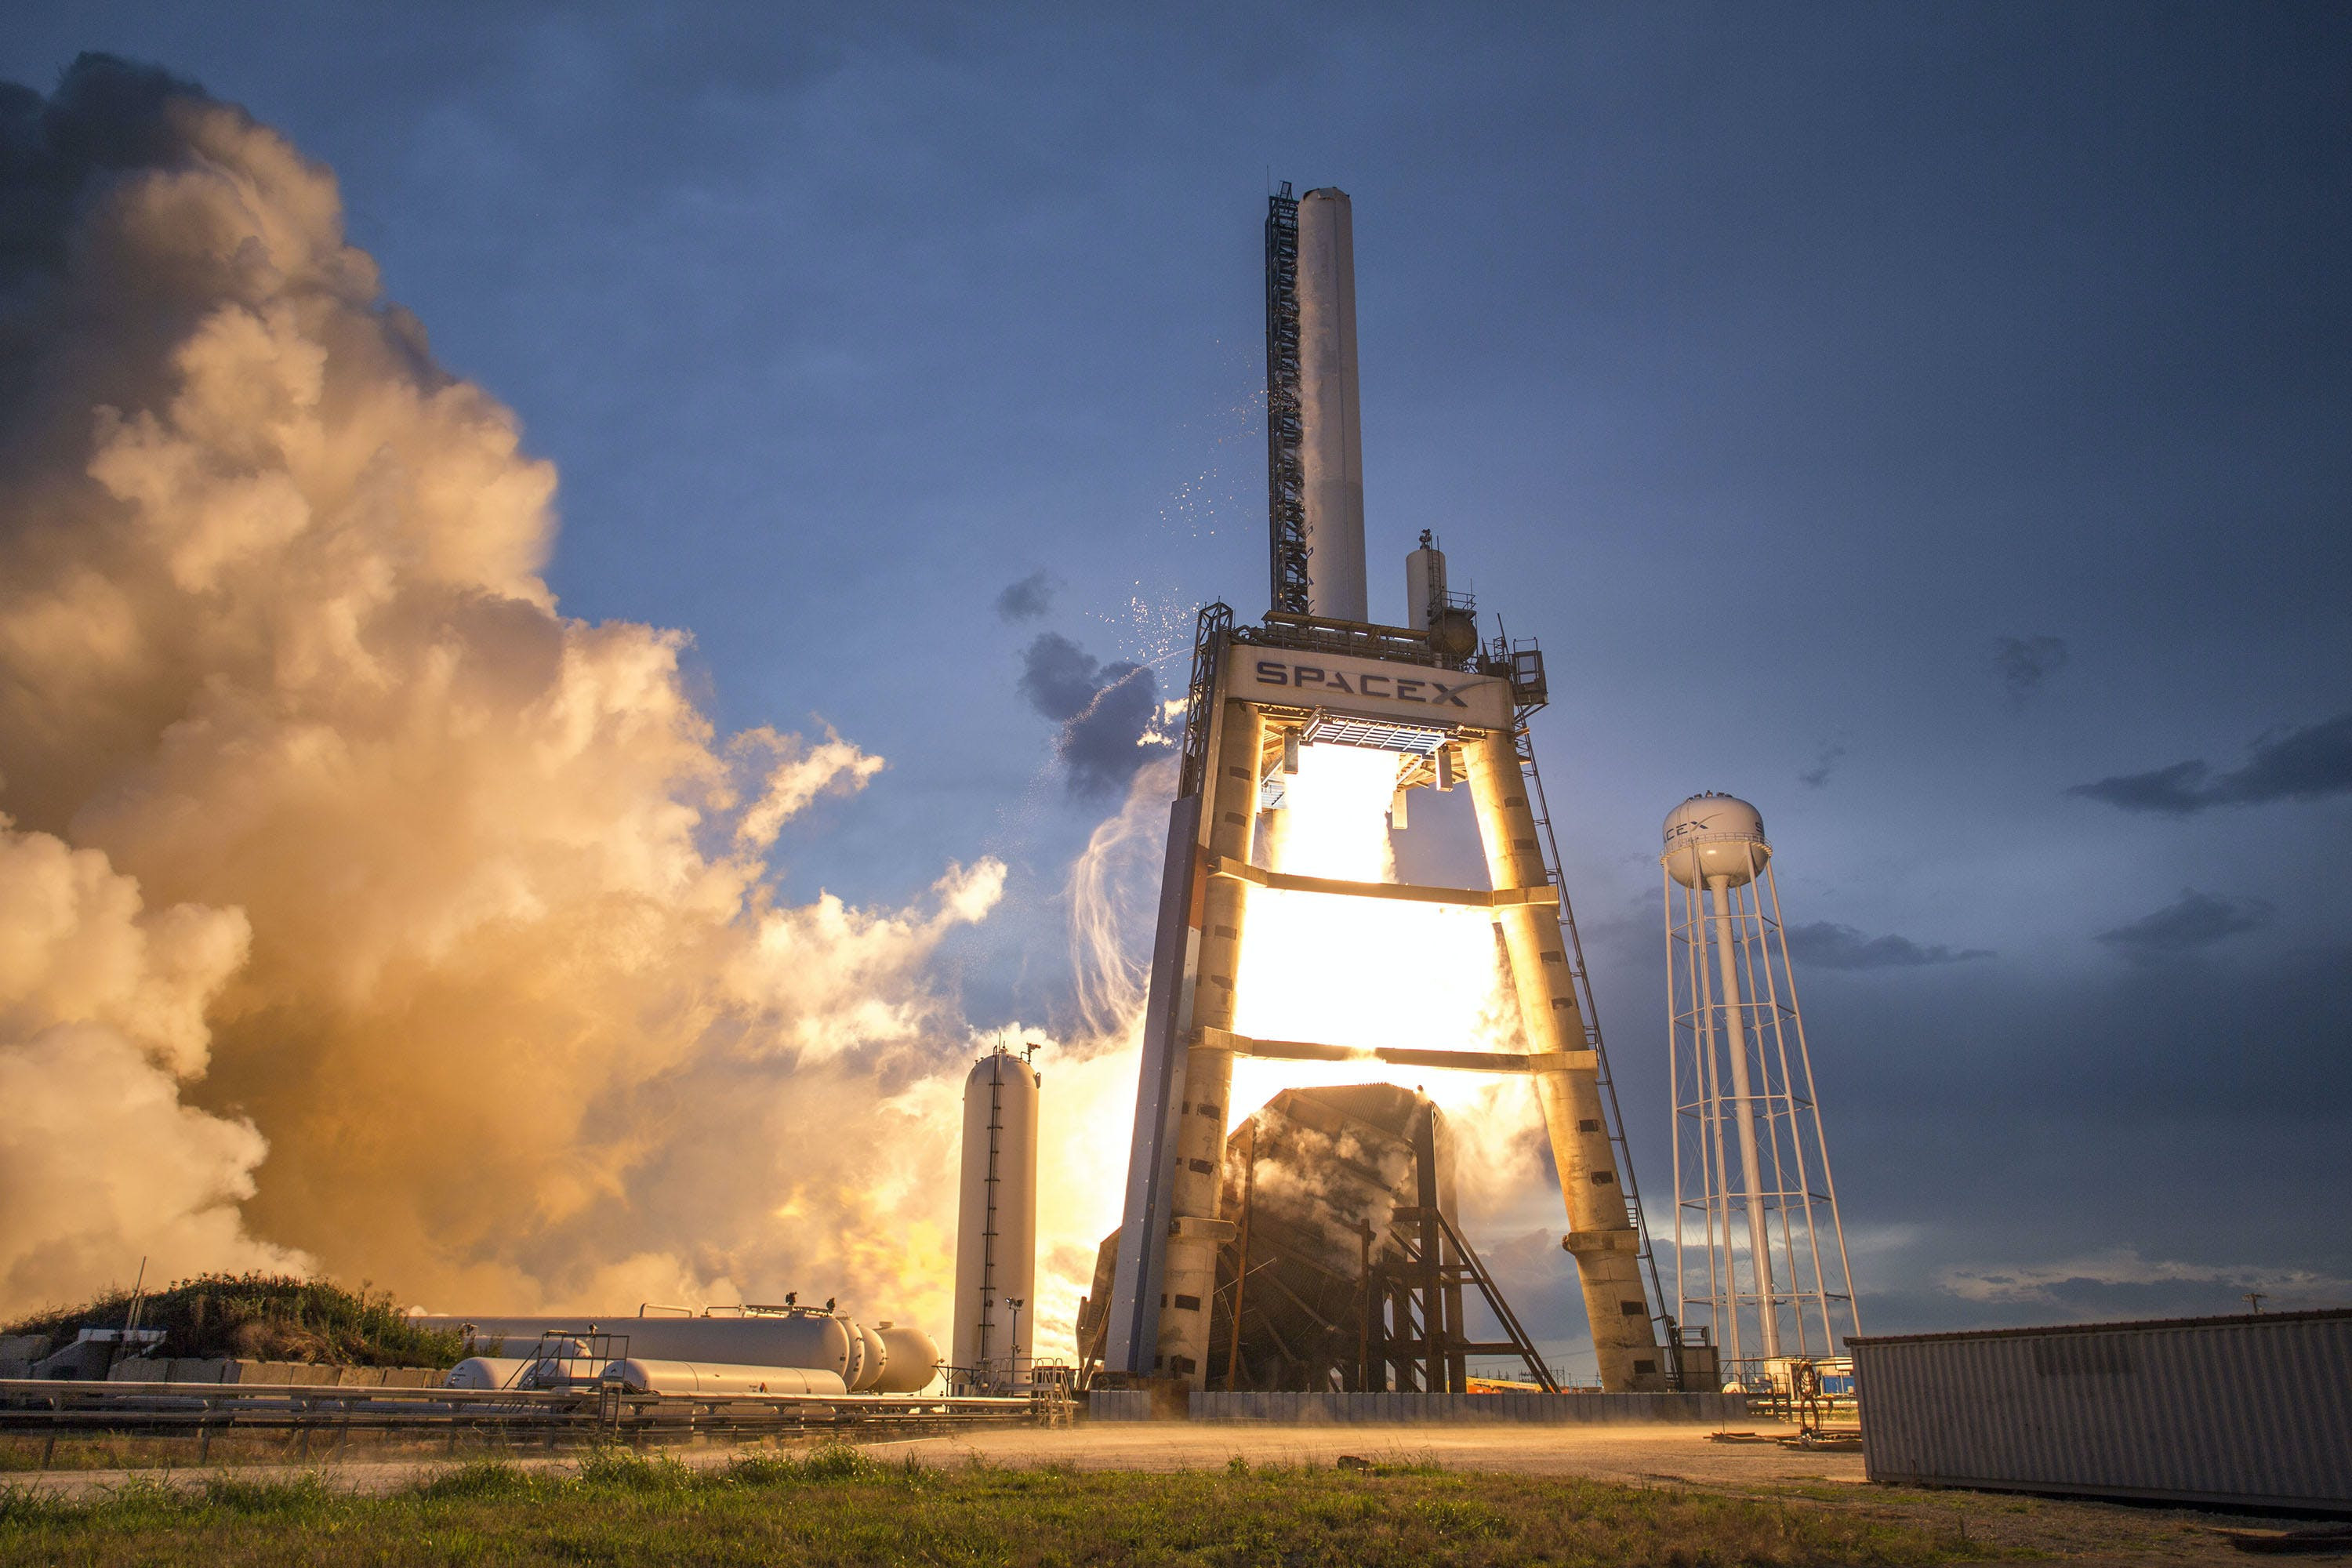 Photo of Gray and White Spacex Space Shuttle